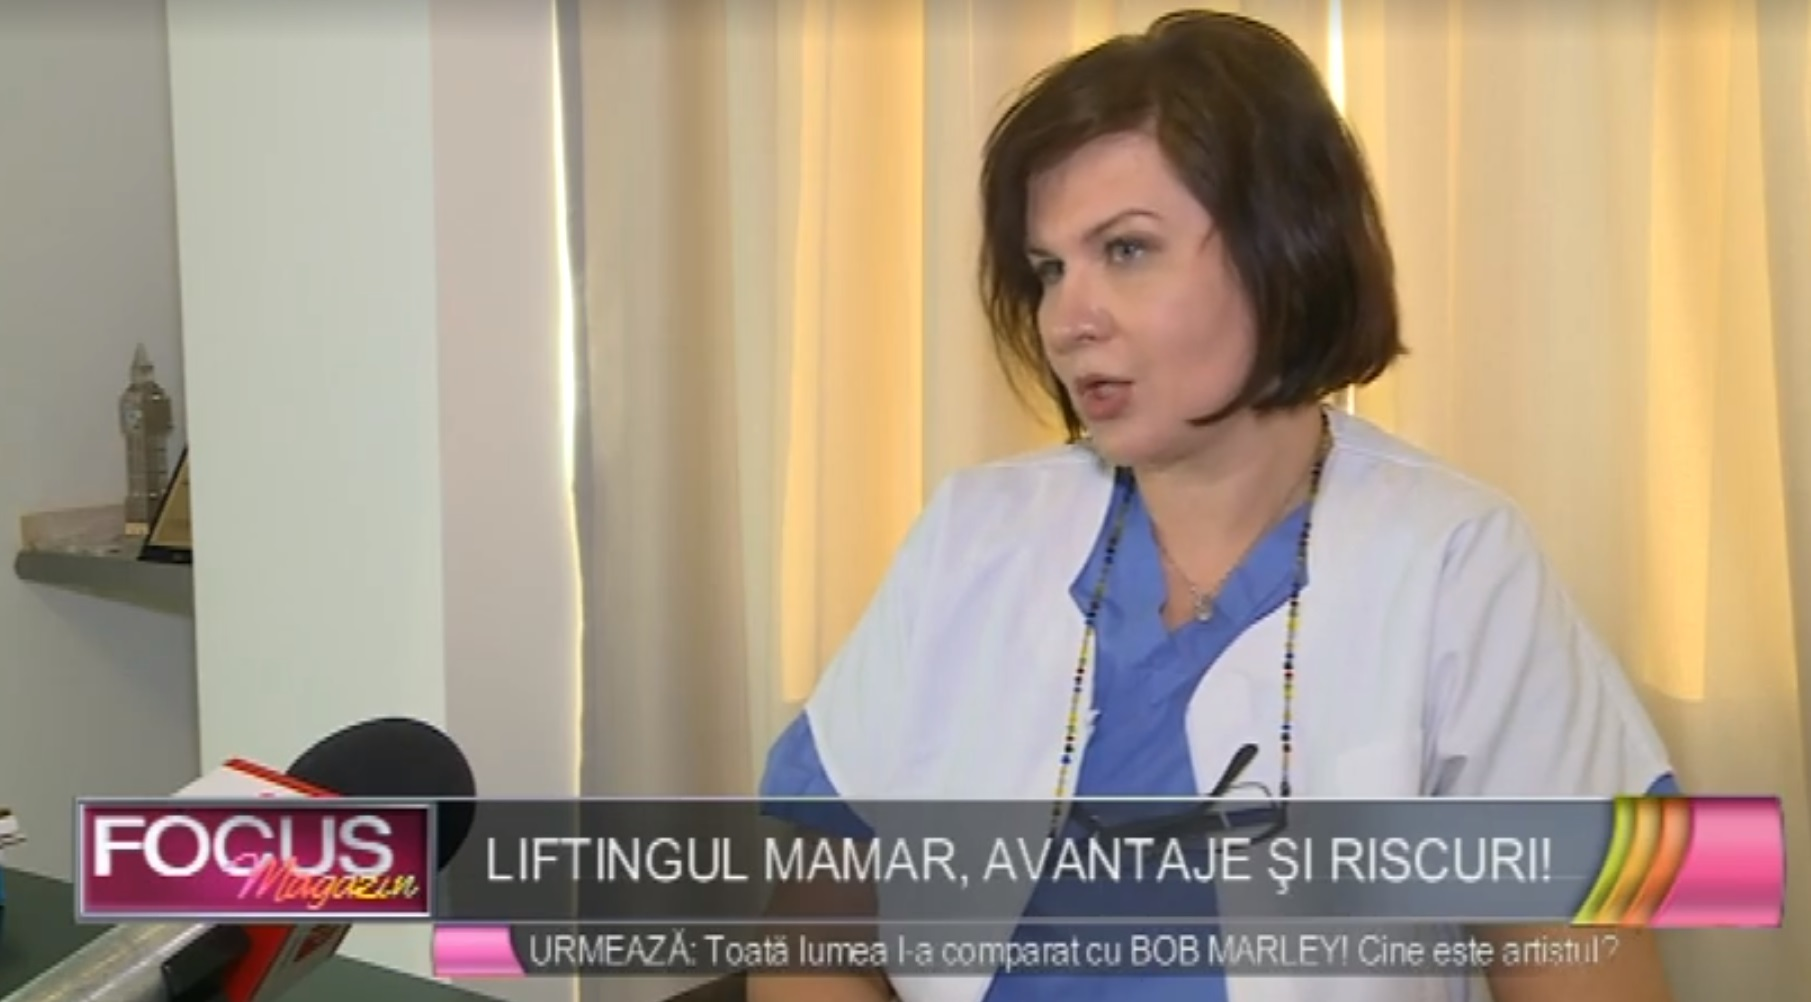 Dr Vasilescu appears on Romanian TV